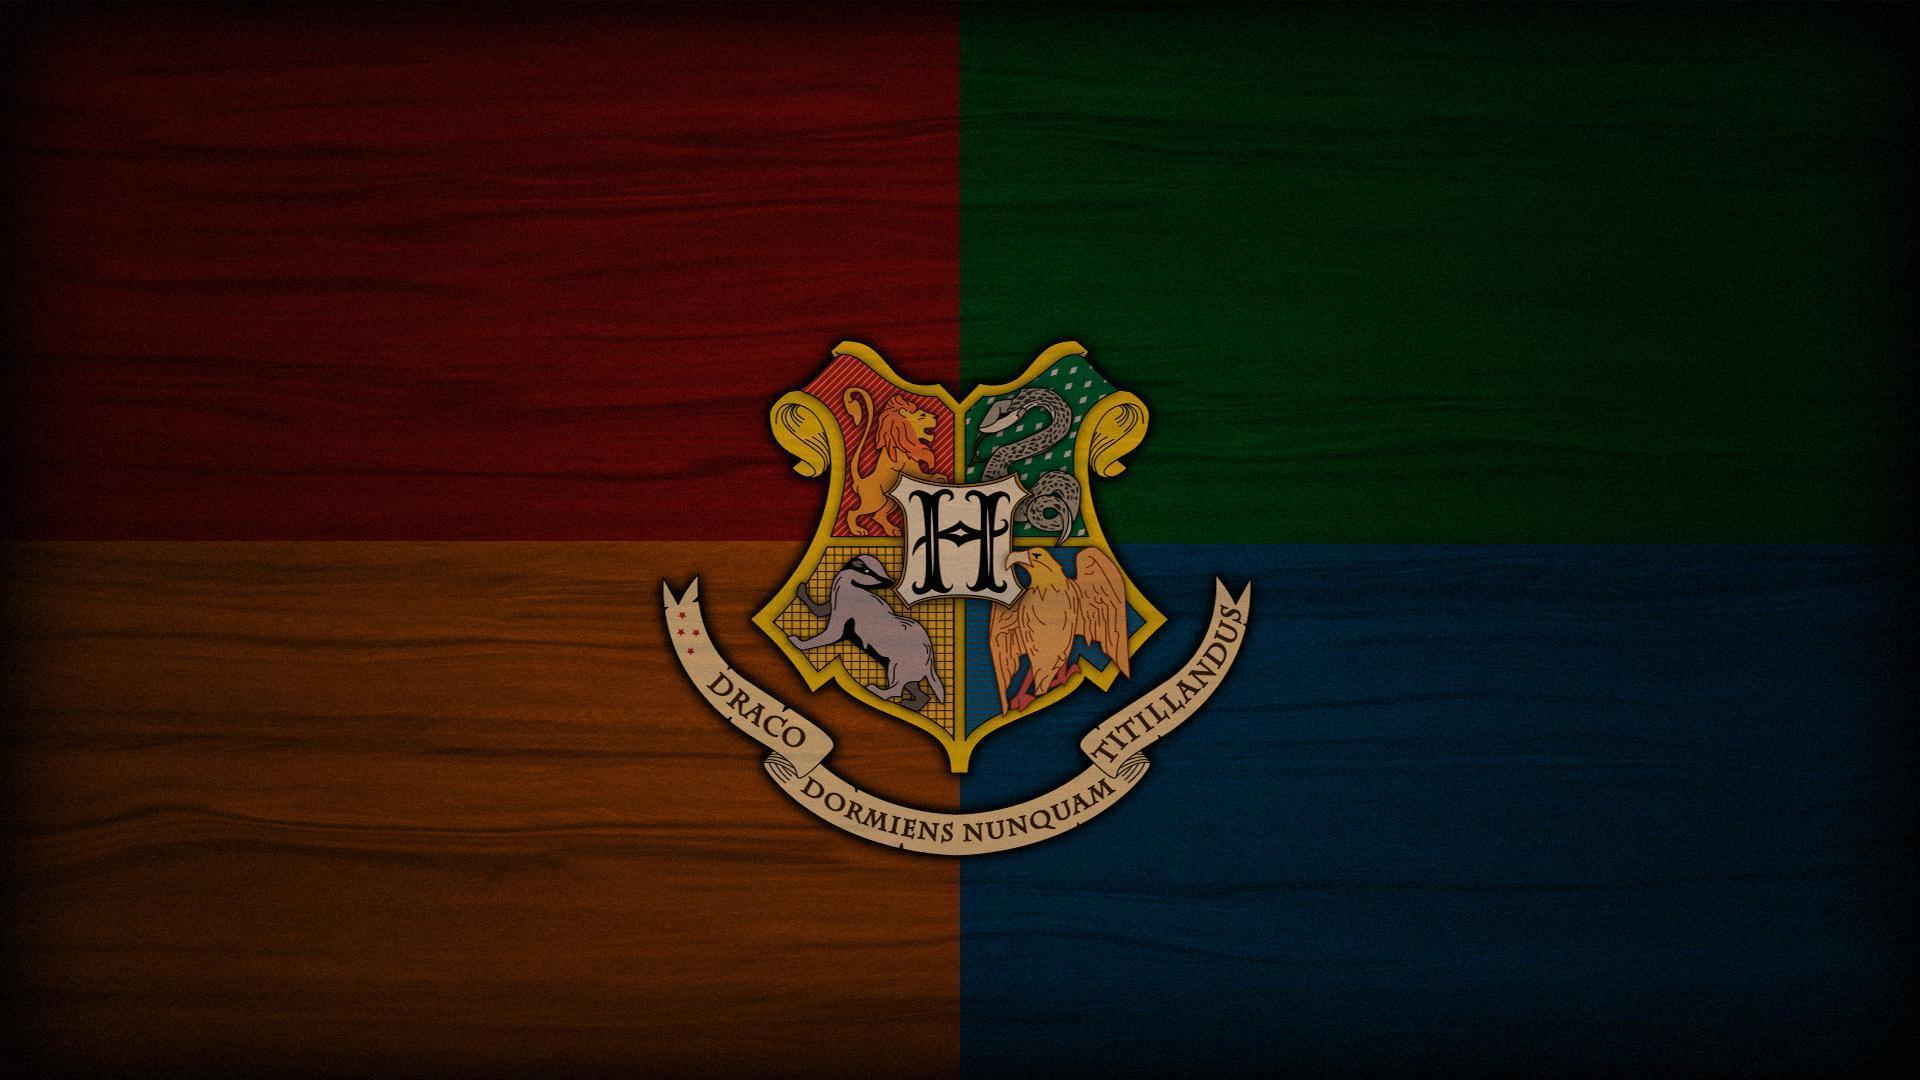 hogwarts desktop wallpaper - photo #22